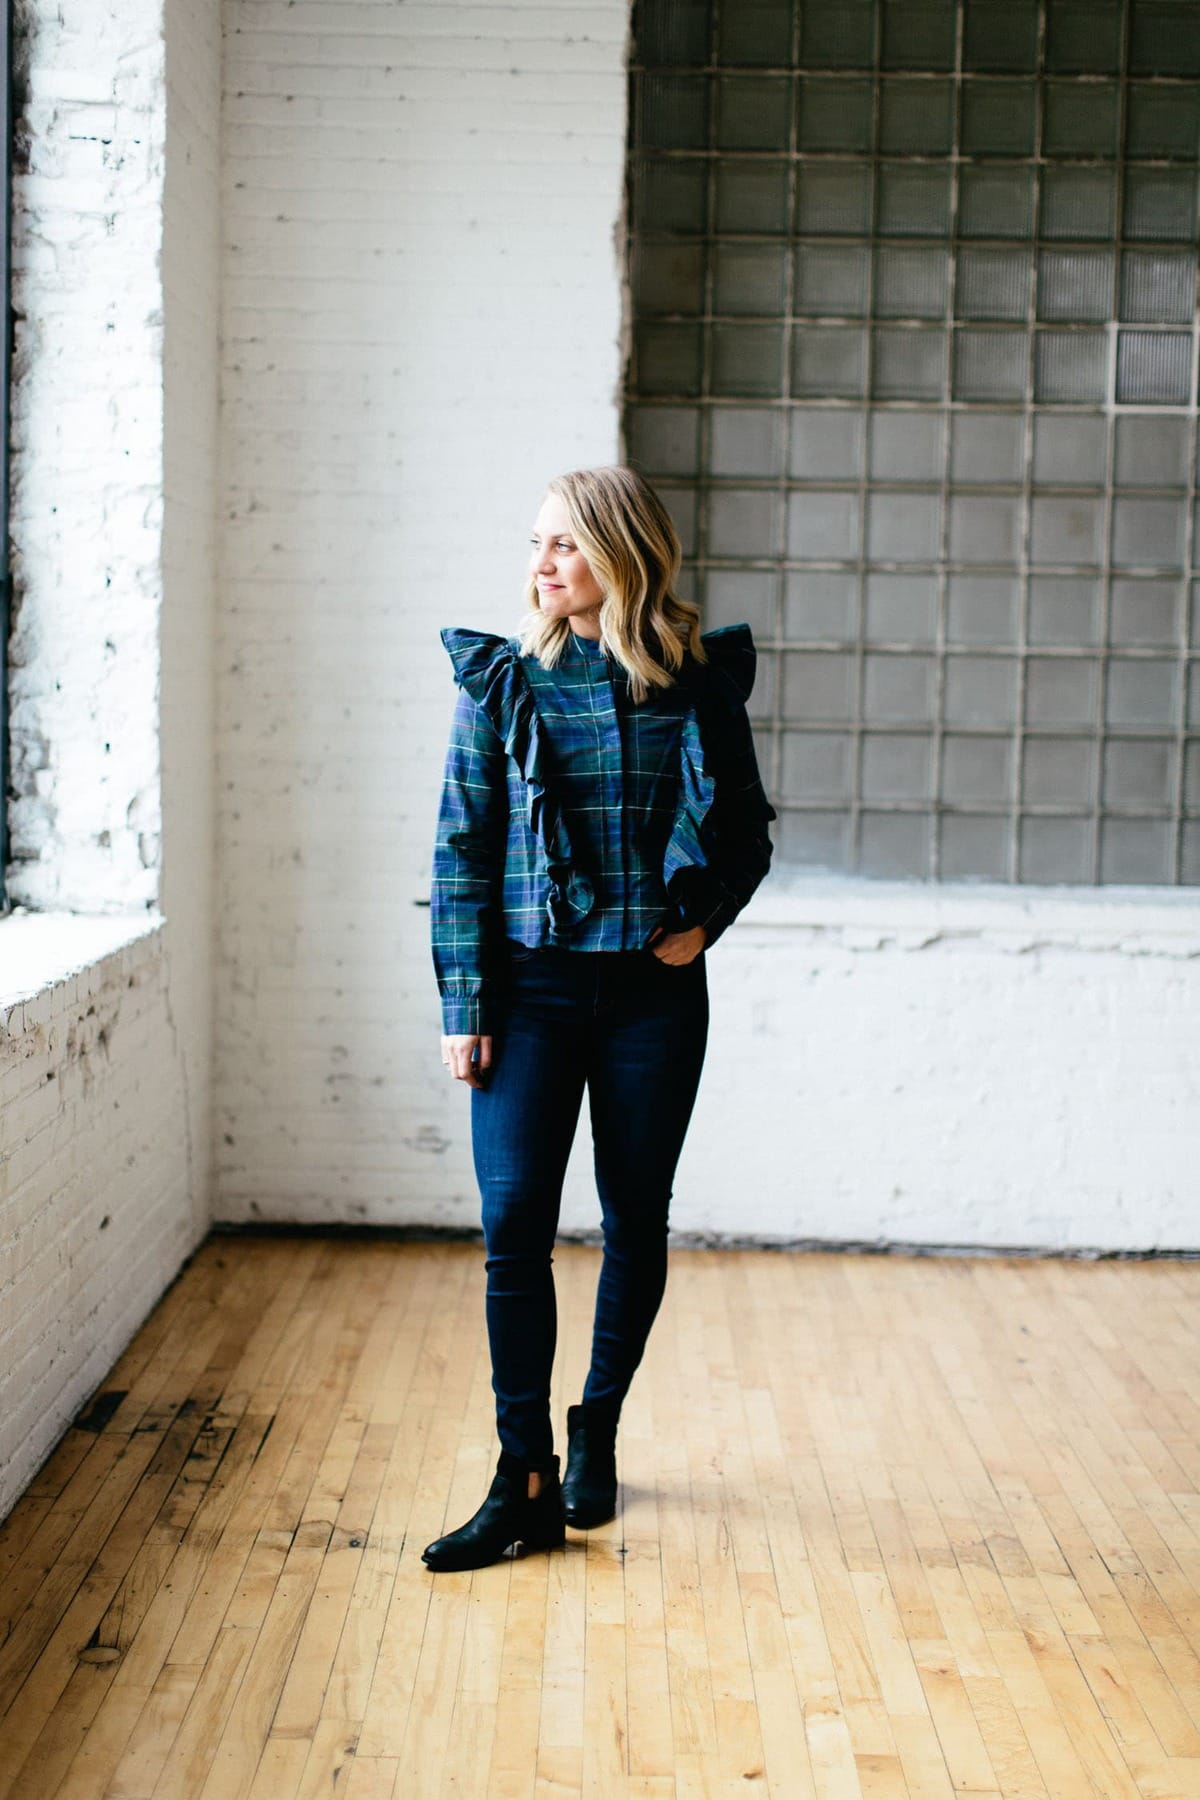 Fall 2017 style must-haves from popular retailers such as Nordstrom, Express, and Madewell!